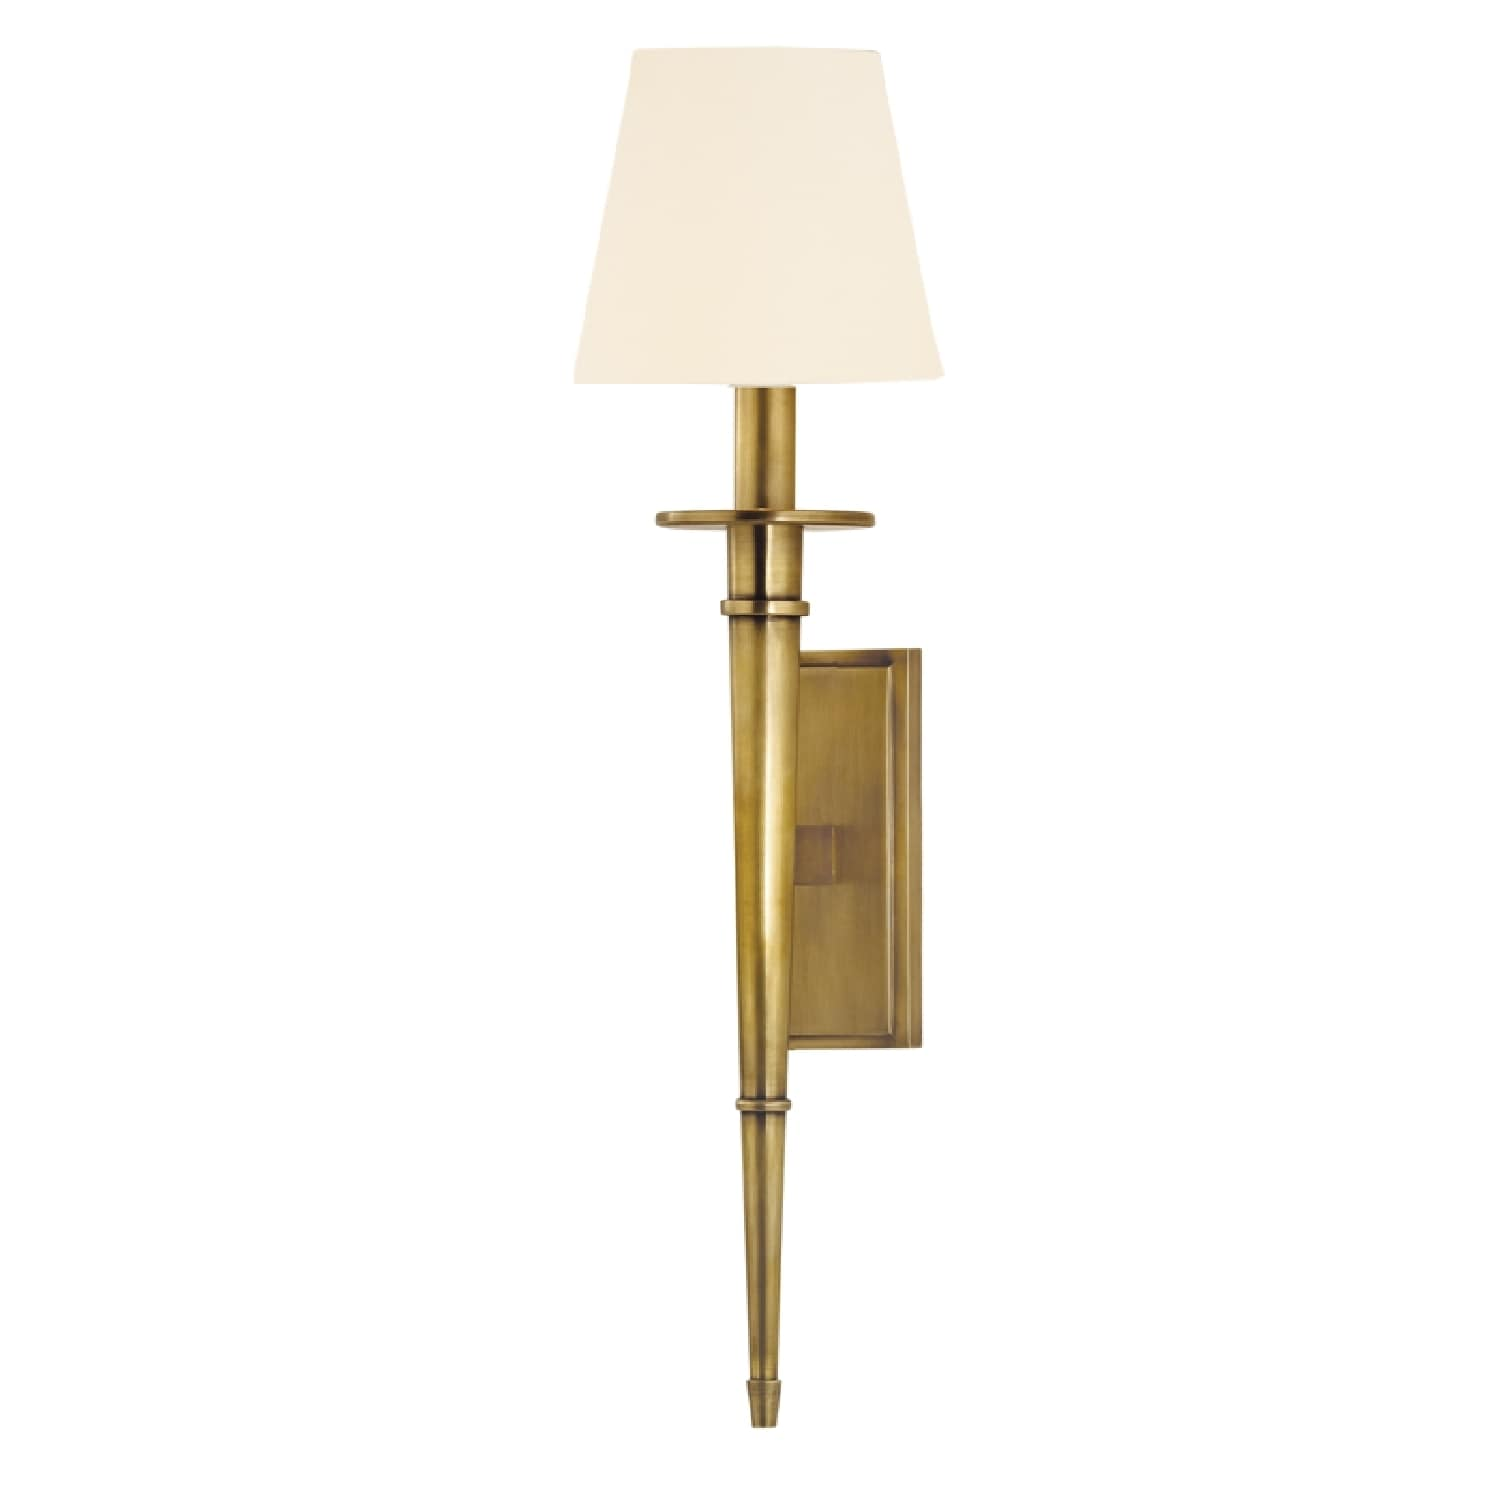 Hudson valley stanford round torch sconce aged brass with white